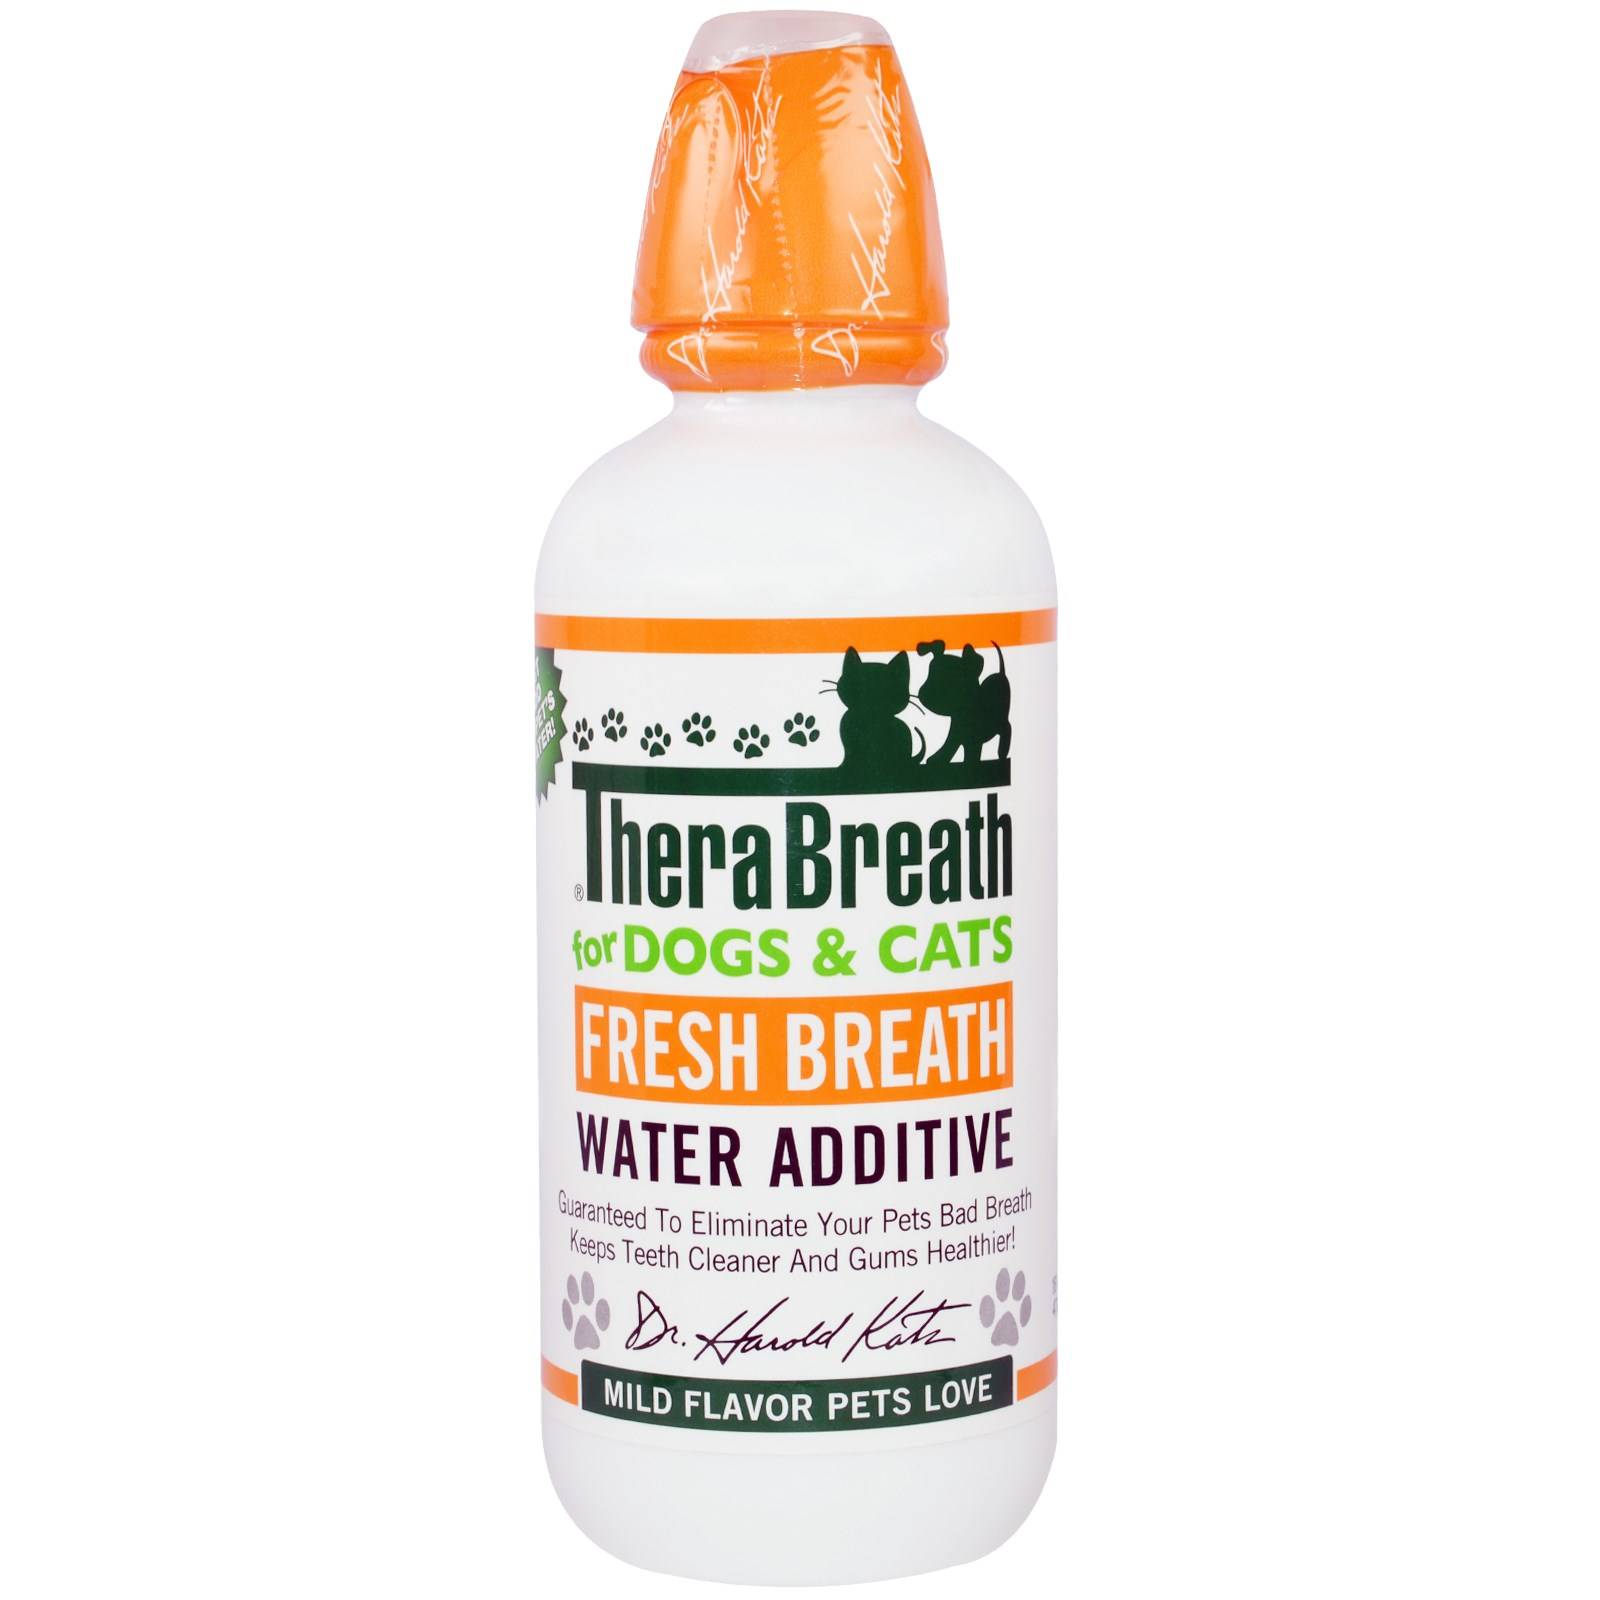 TheraBreath, Fresh Breath Water Additive, For Dogs and Cats, Mild Flavor,  16 fl oz (473 ml)